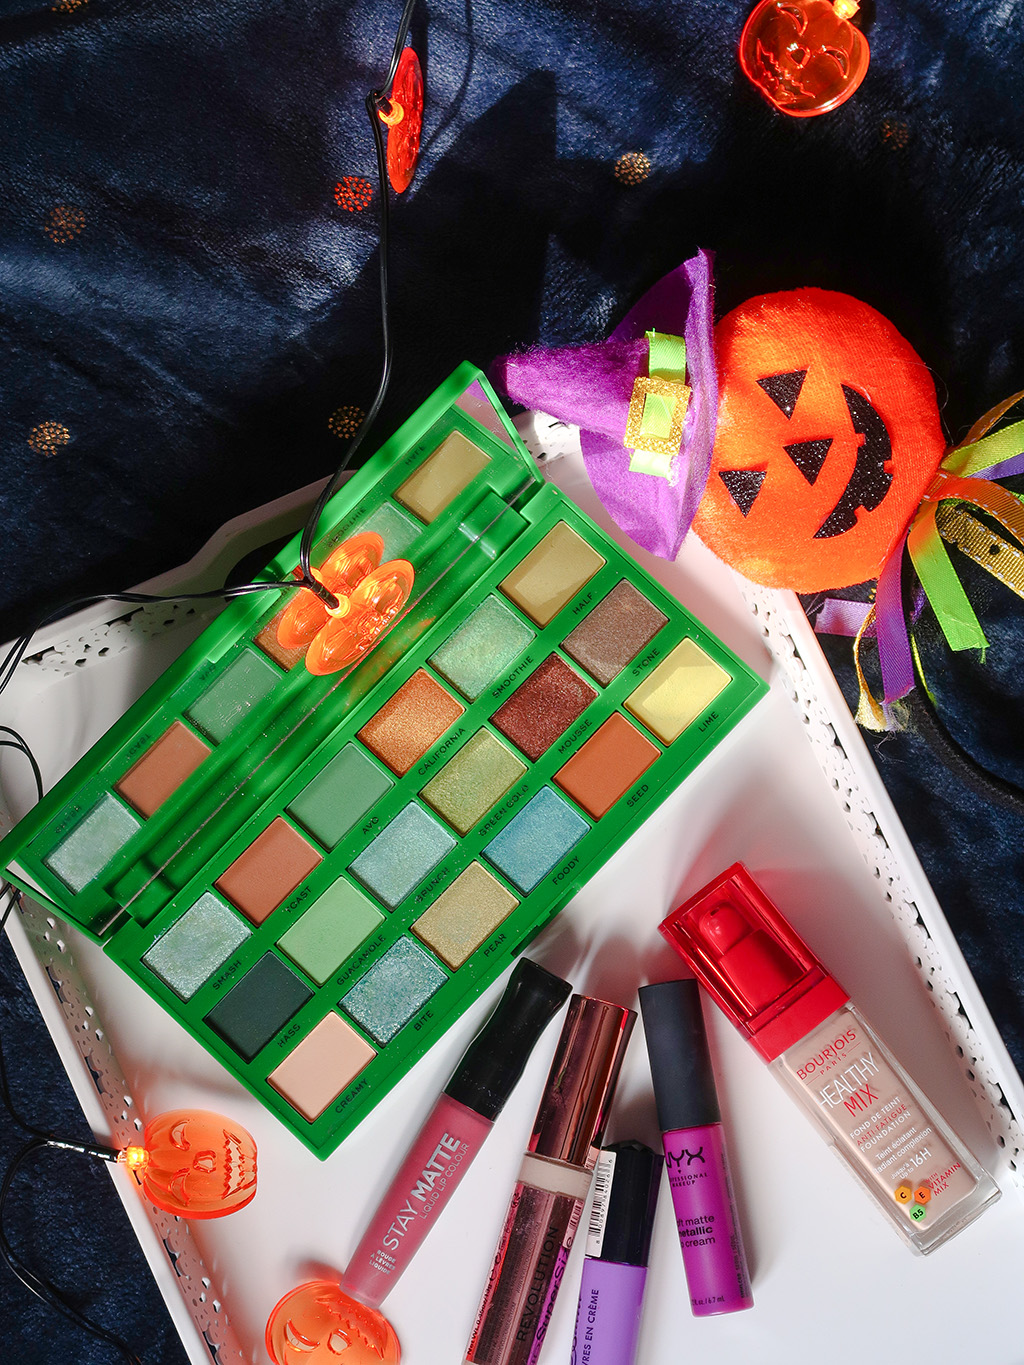 notino machiaj halloween makeup paleta makeup revolution tasty avocado bourjois ruj nyx